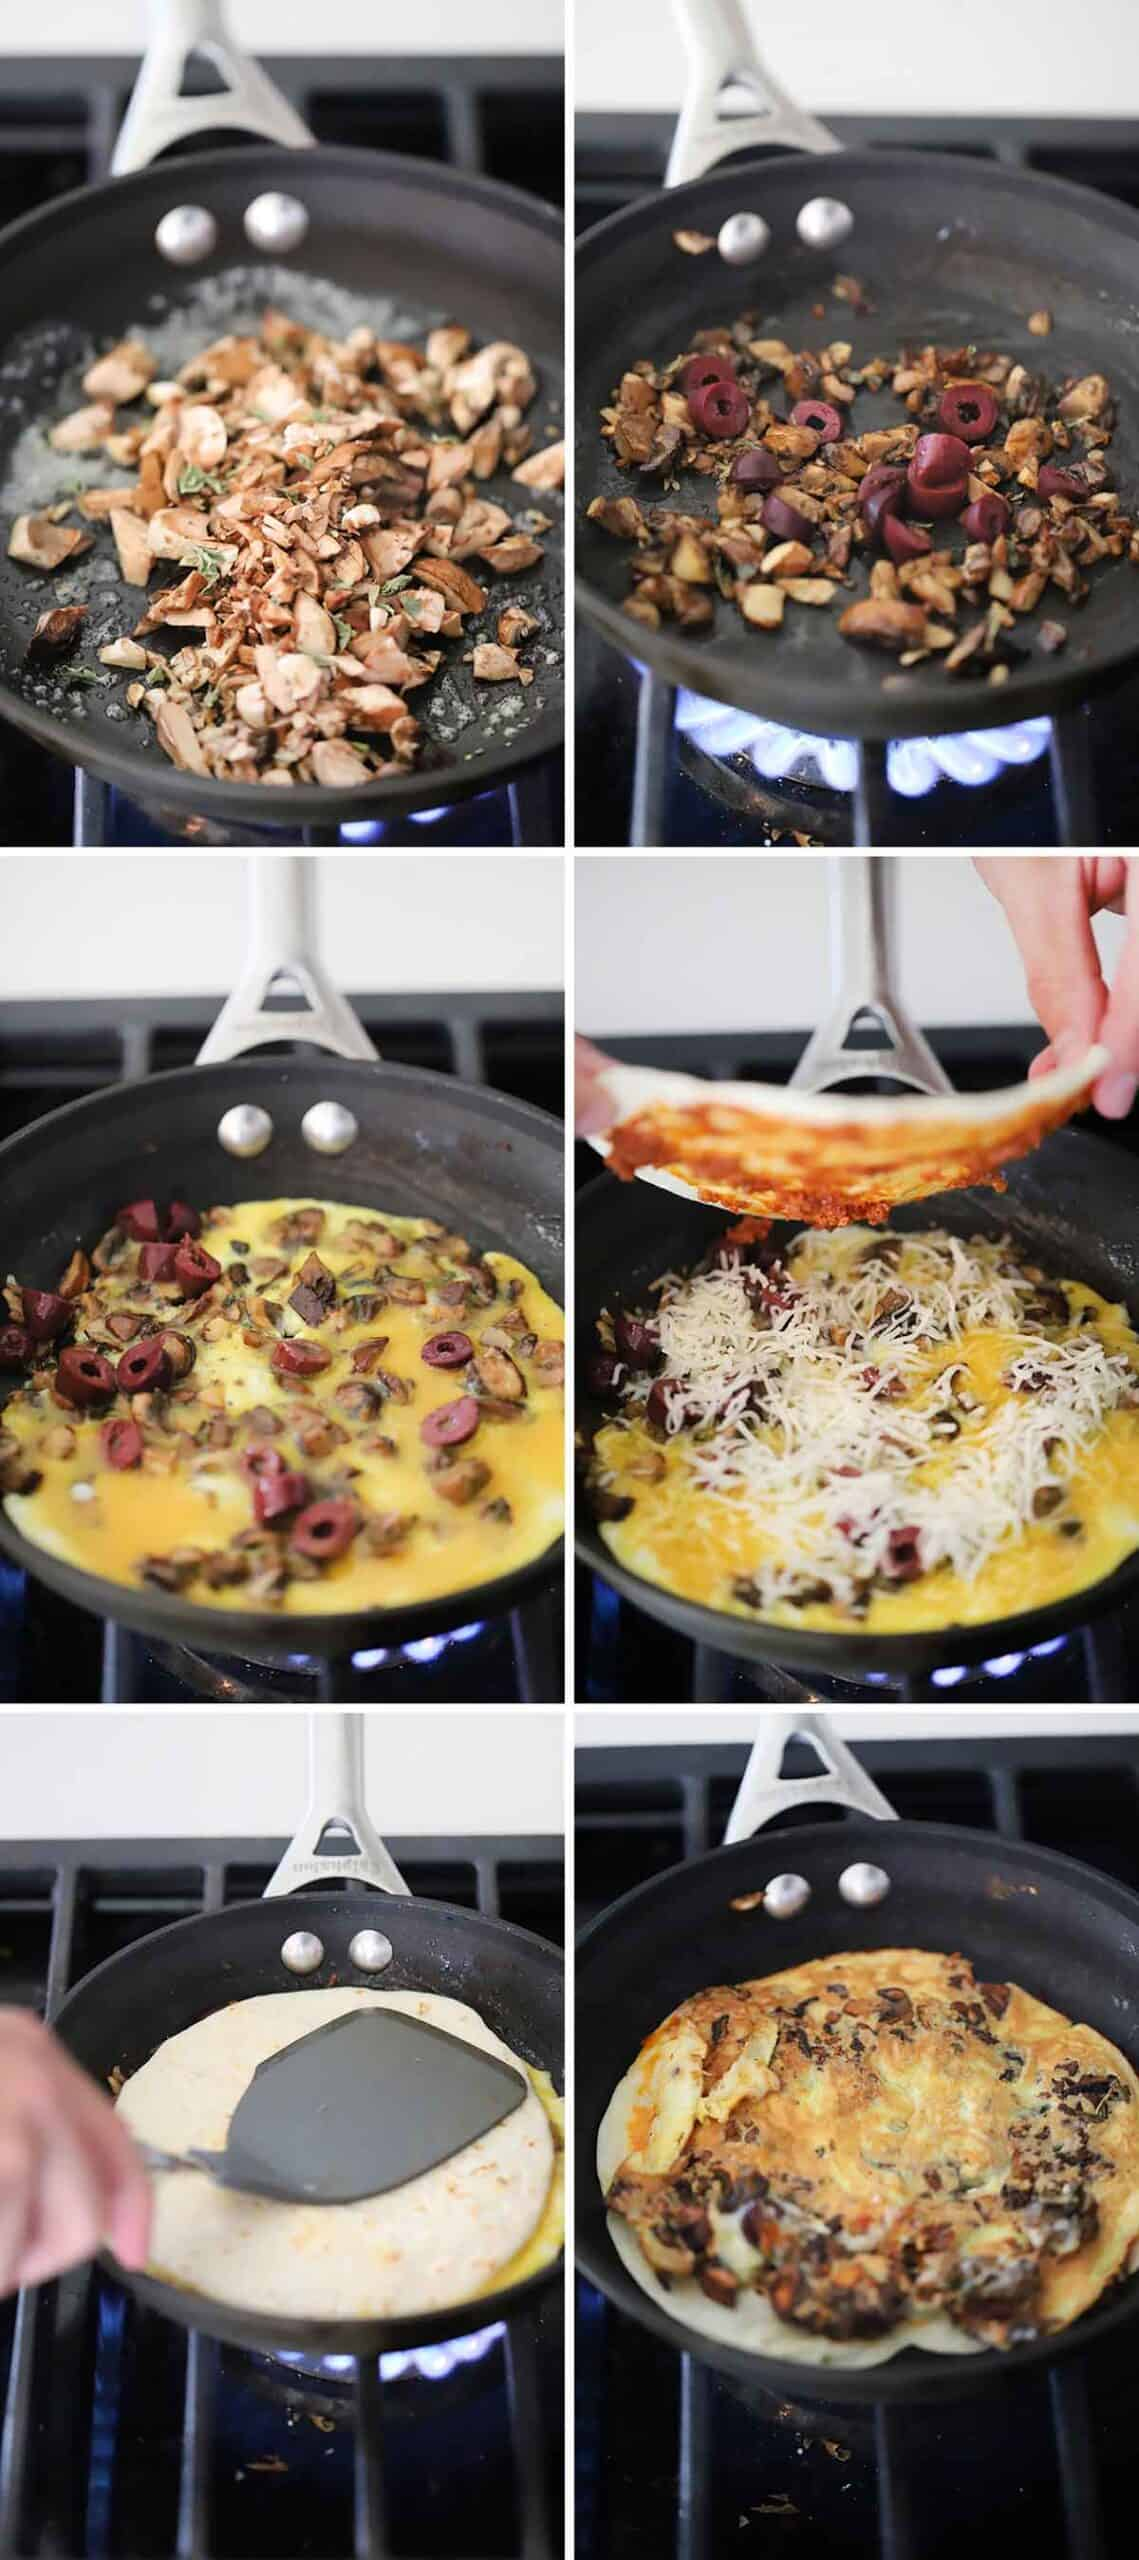 Process collage showing how to make an egg wrap with mushrooms, olive, cheese, and a tortilla in a skillet.